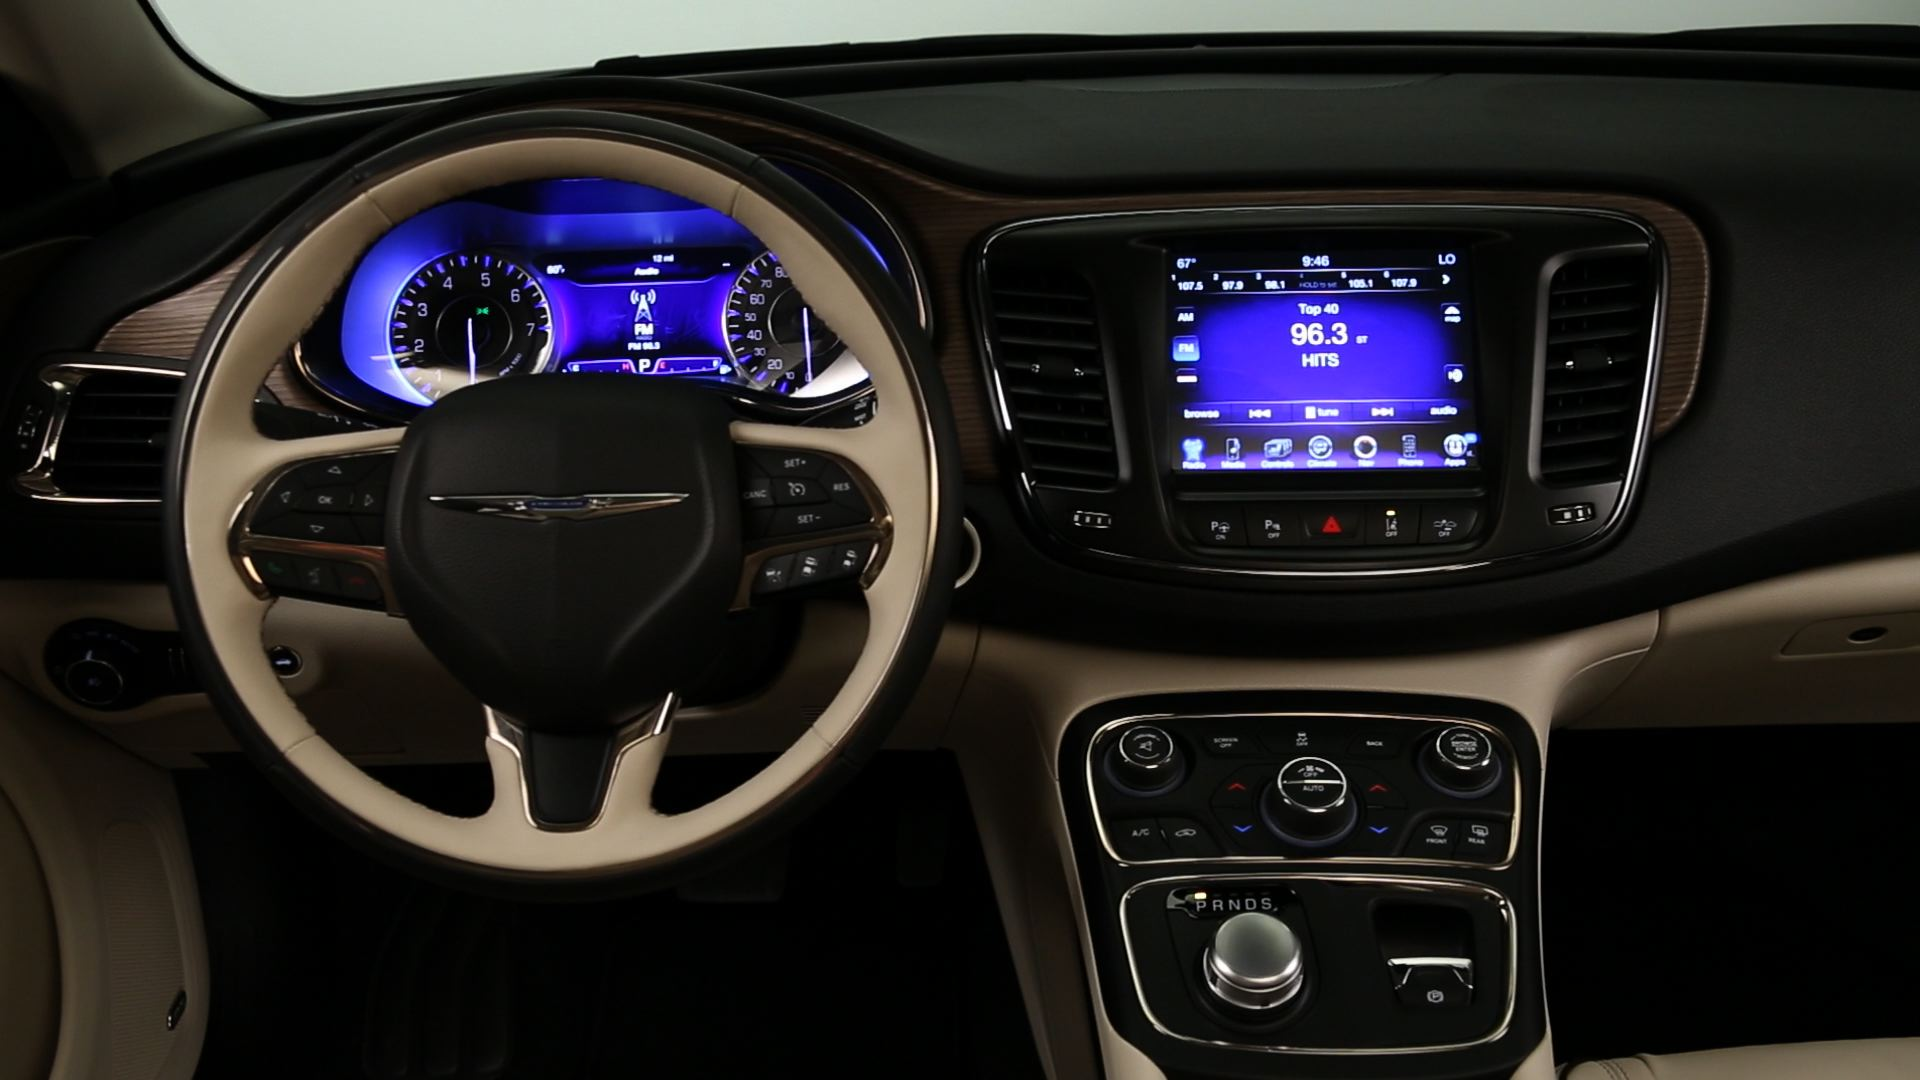 FCA US Media - All-New 2015 Chrysler 200 Delivers Array of